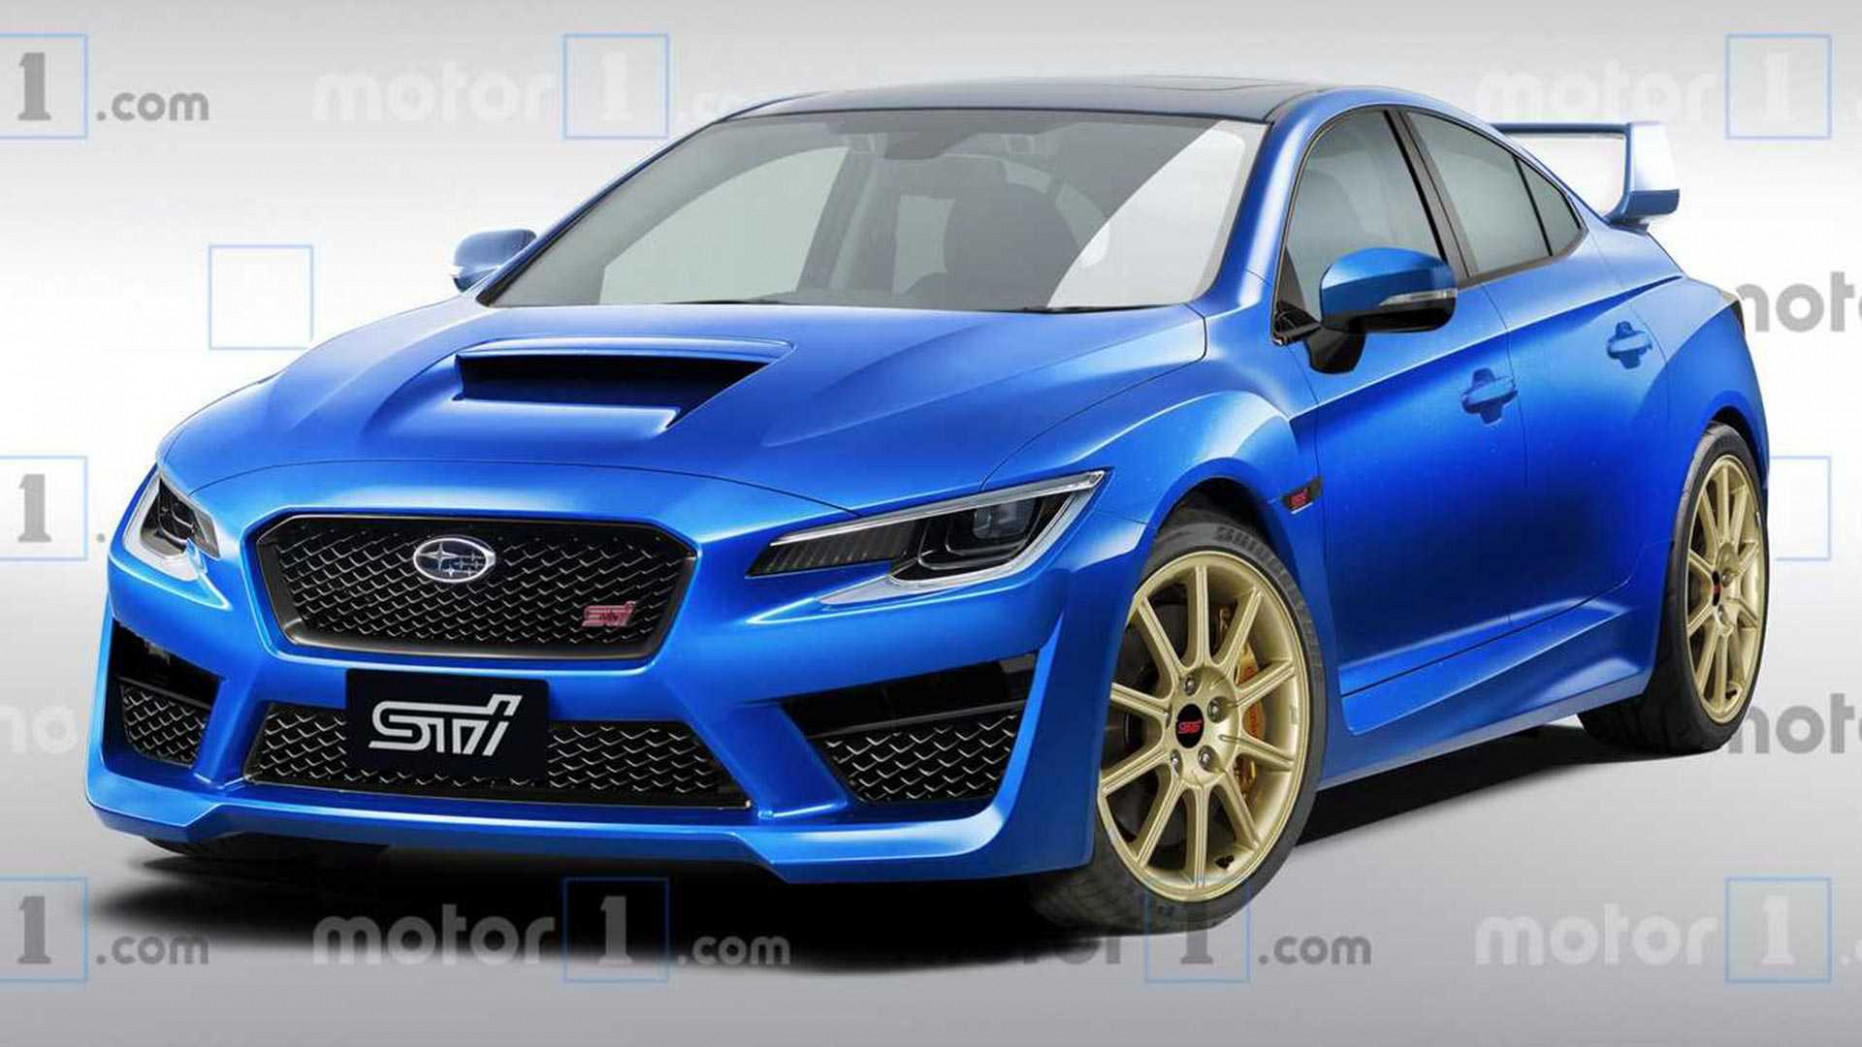 New Subaru WRX, WRX STI, Levorg Coming In Late 9: Report